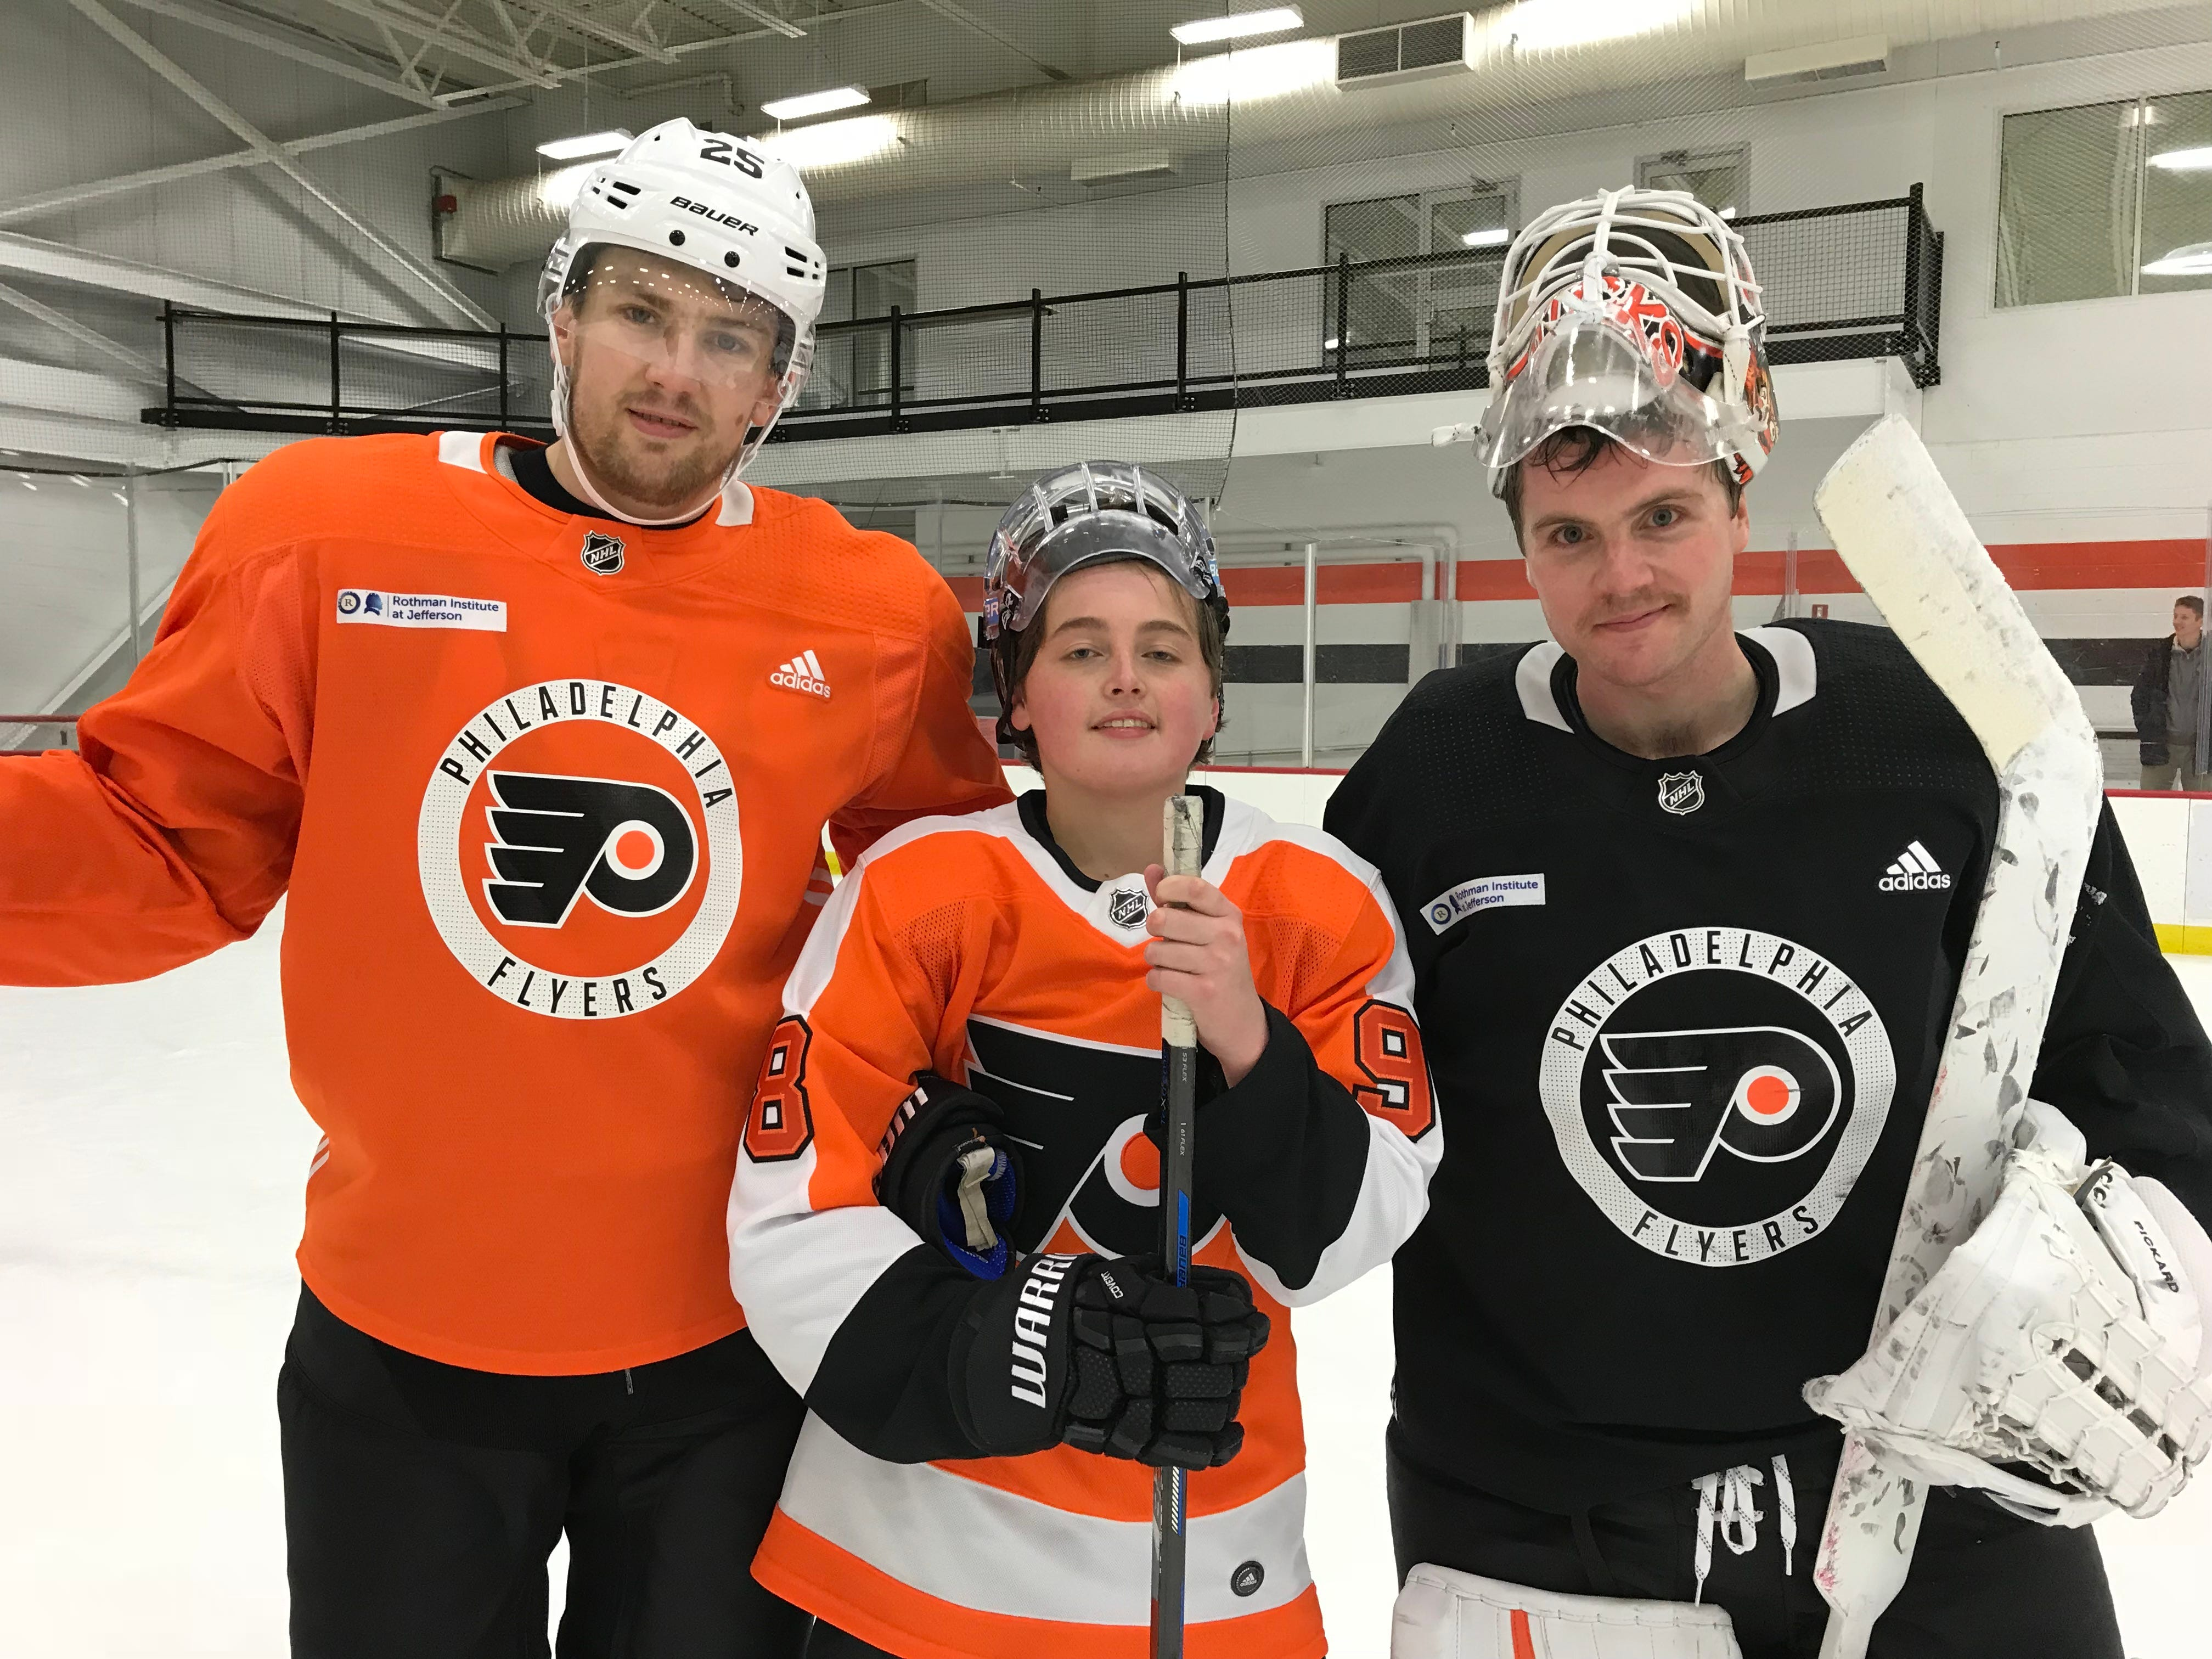 New Jersey teen signs one-day contract with Flyers